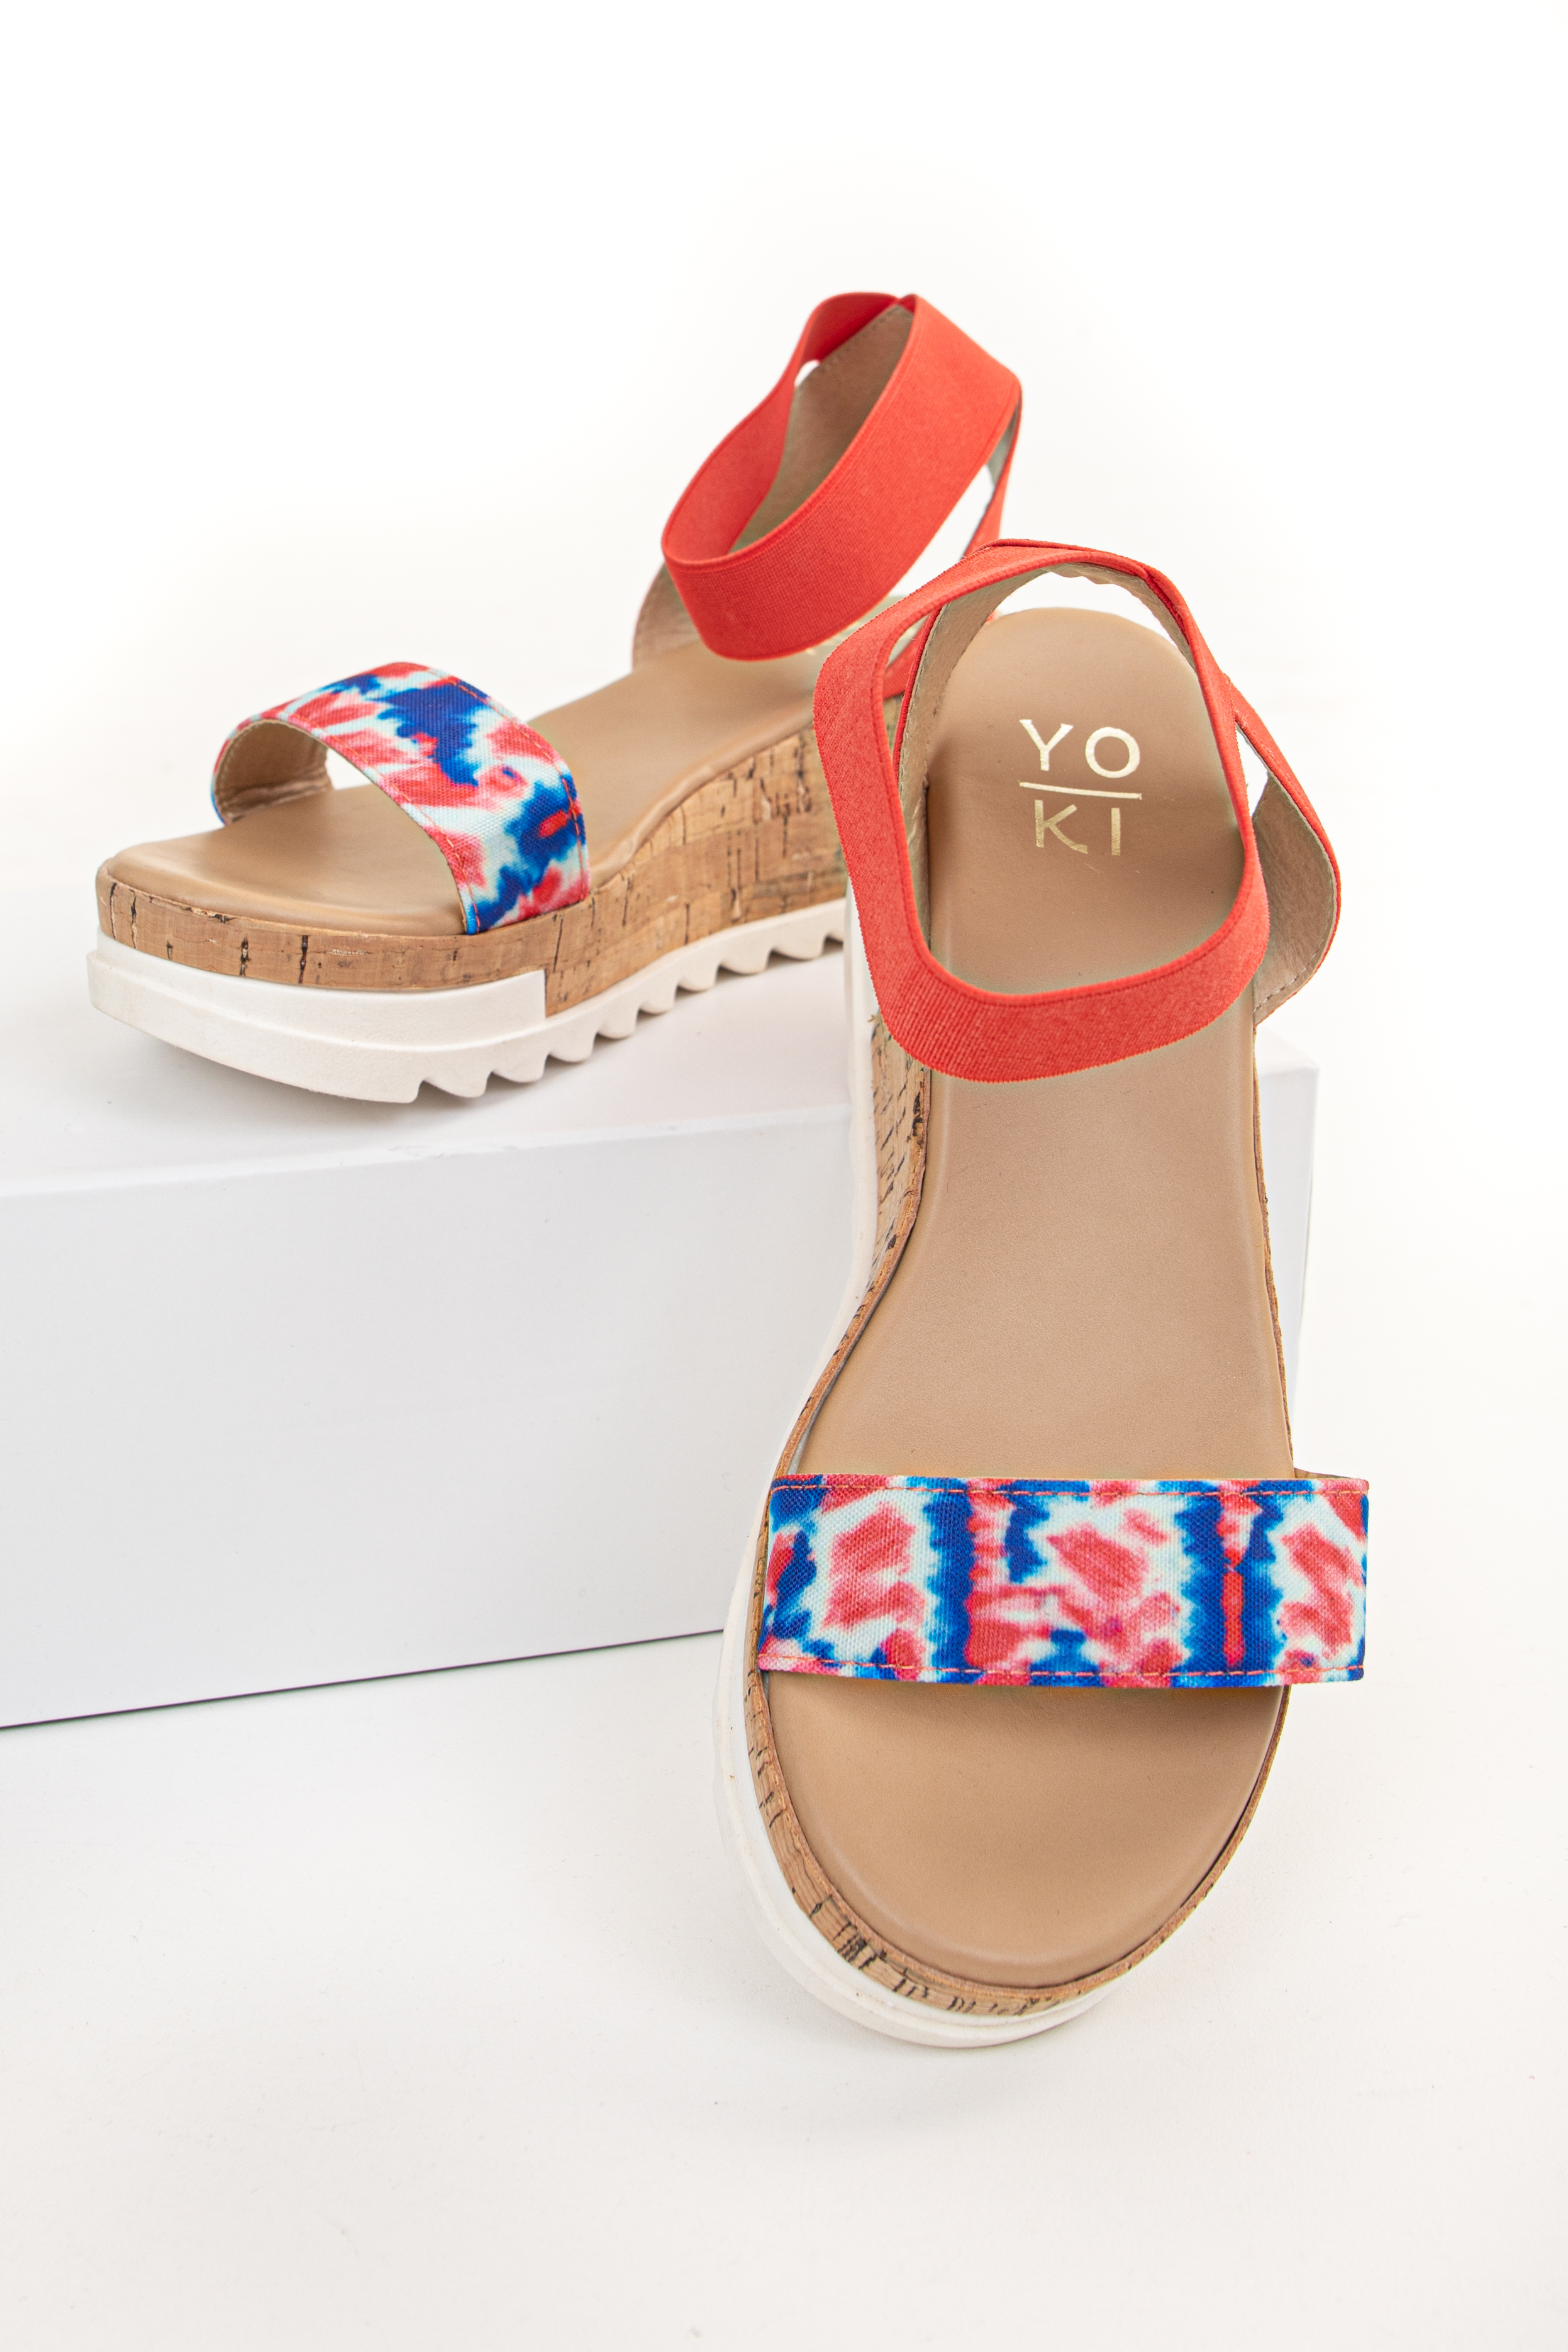 Crimson Red Tie Dye Sandal Wedge with Elastic Straps